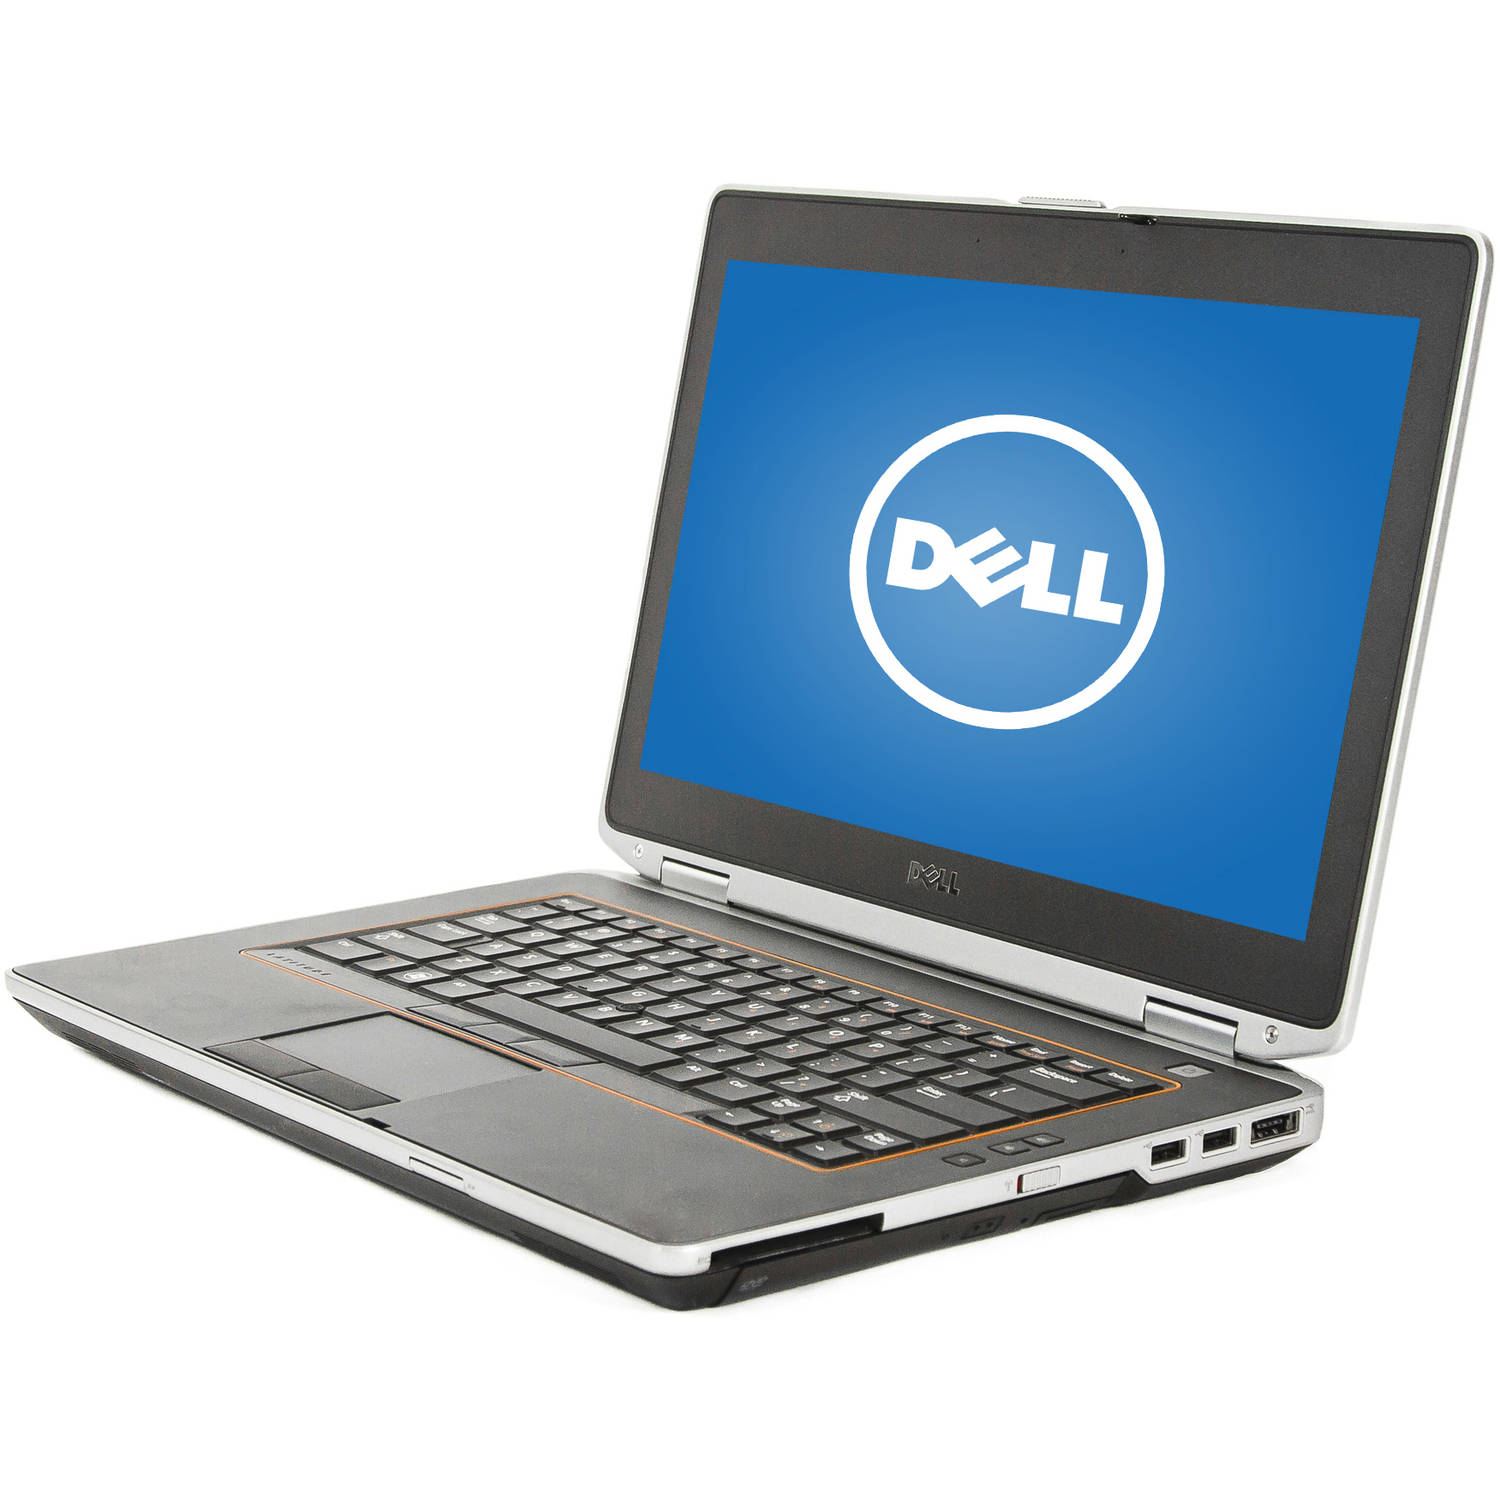 Dell E6420 Core i5 2.5GHz 4096MB 320GB 14-inch DVD-RW Hdmi Windows 7 Professional Laptop Computer #E6420 LT